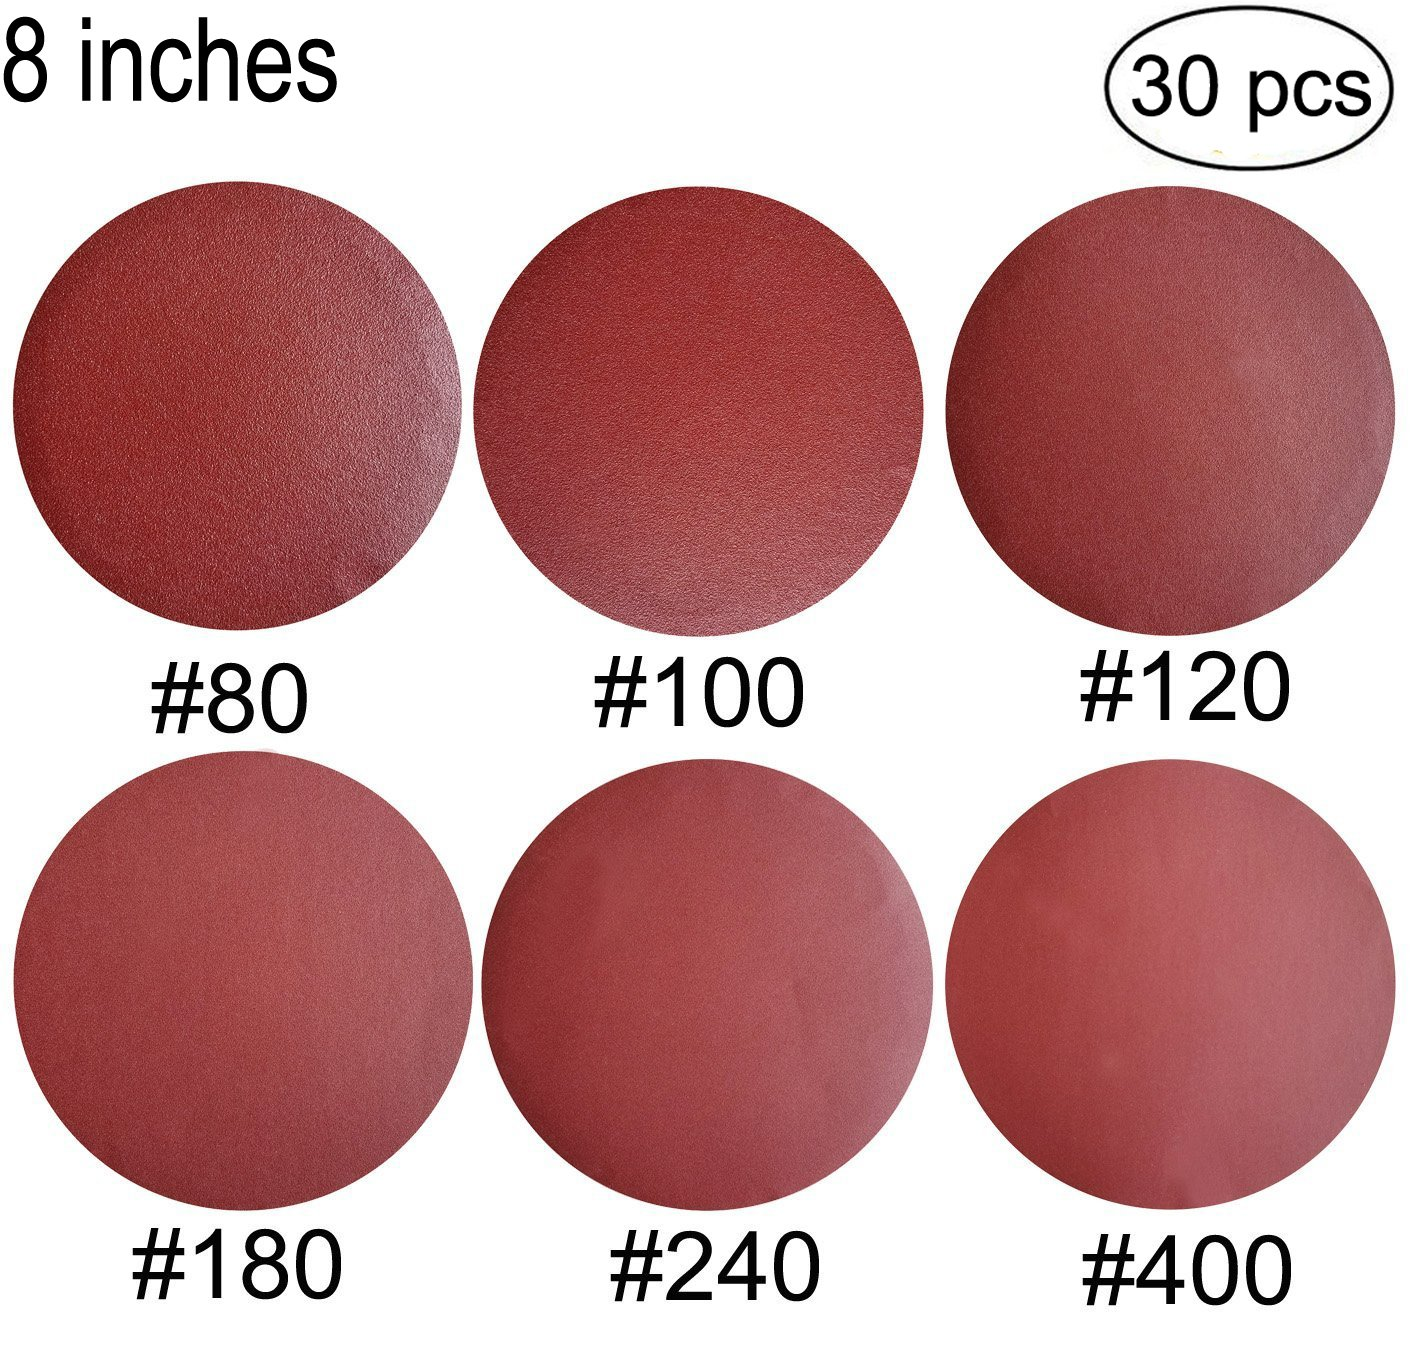 30 PCS 8-inch No-Hole PSA Aluminum Oxide Sanding Disc, Self Stick(5 Each of 80 100 120 180 240 400) 81td4xt0RuL